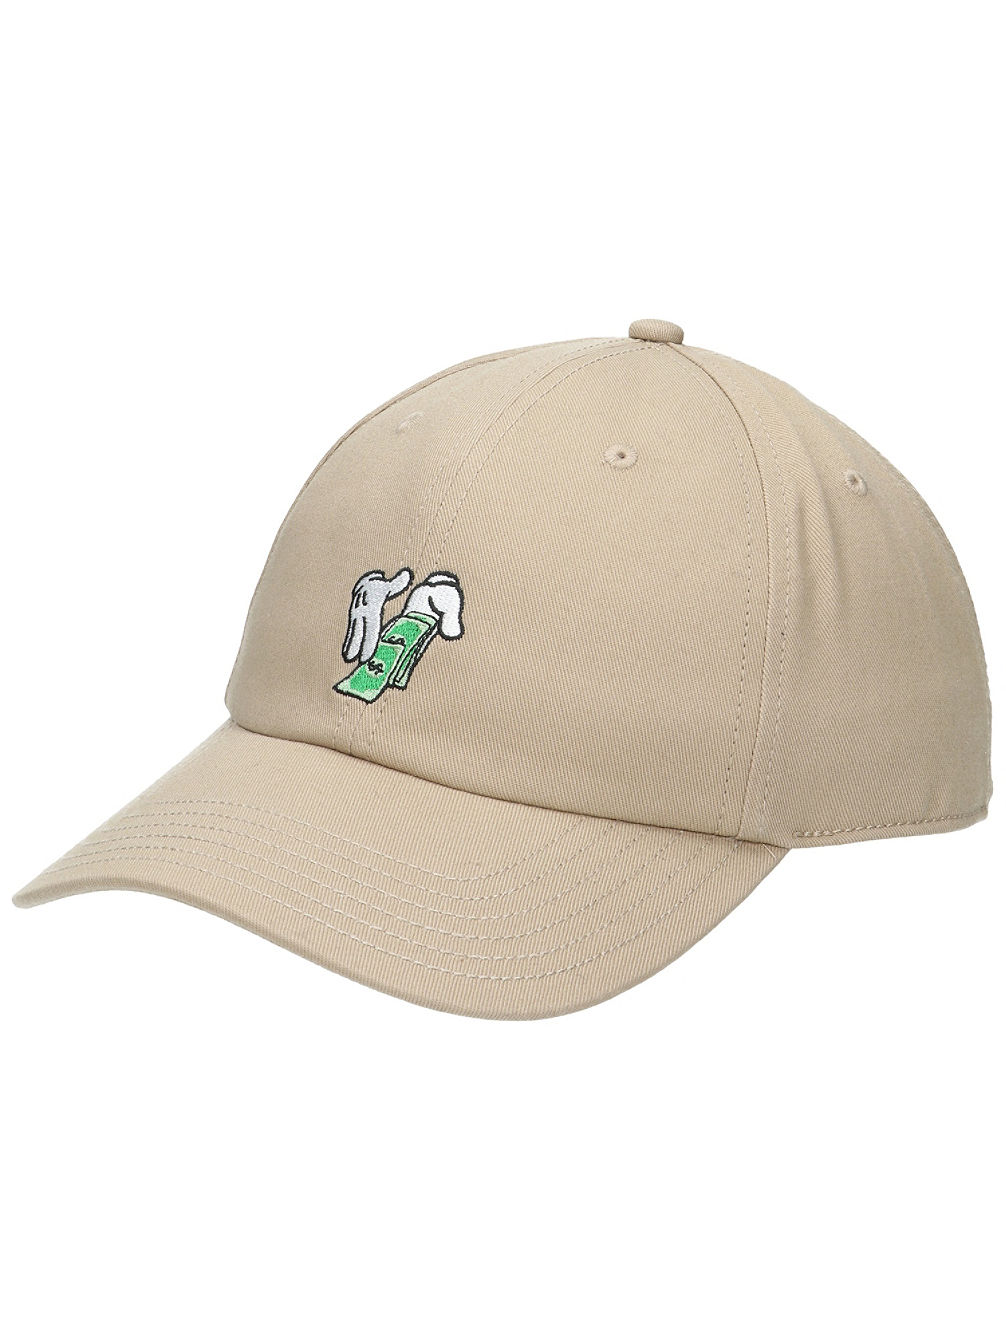 C&S WL Make It Rain Curved Cap